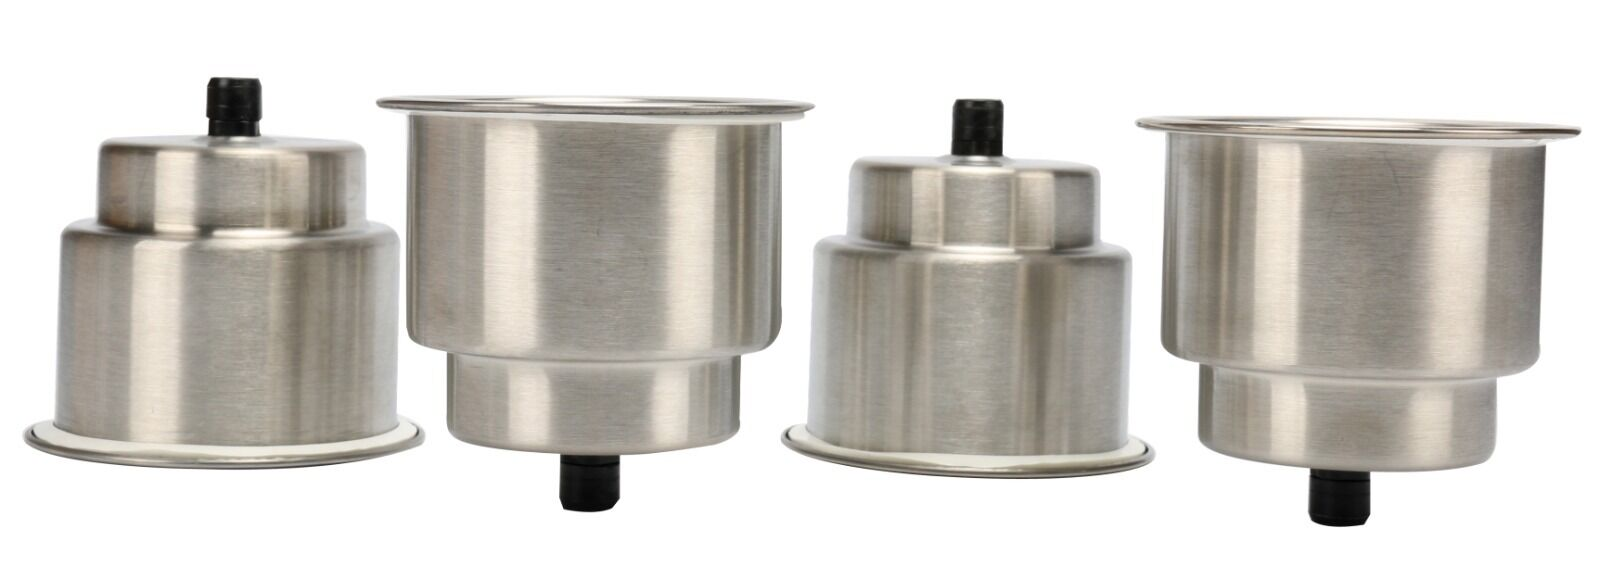 4pcs Stainless Steel Cup Drink Holders with Drain for Marine Boat RV Camper -EFP